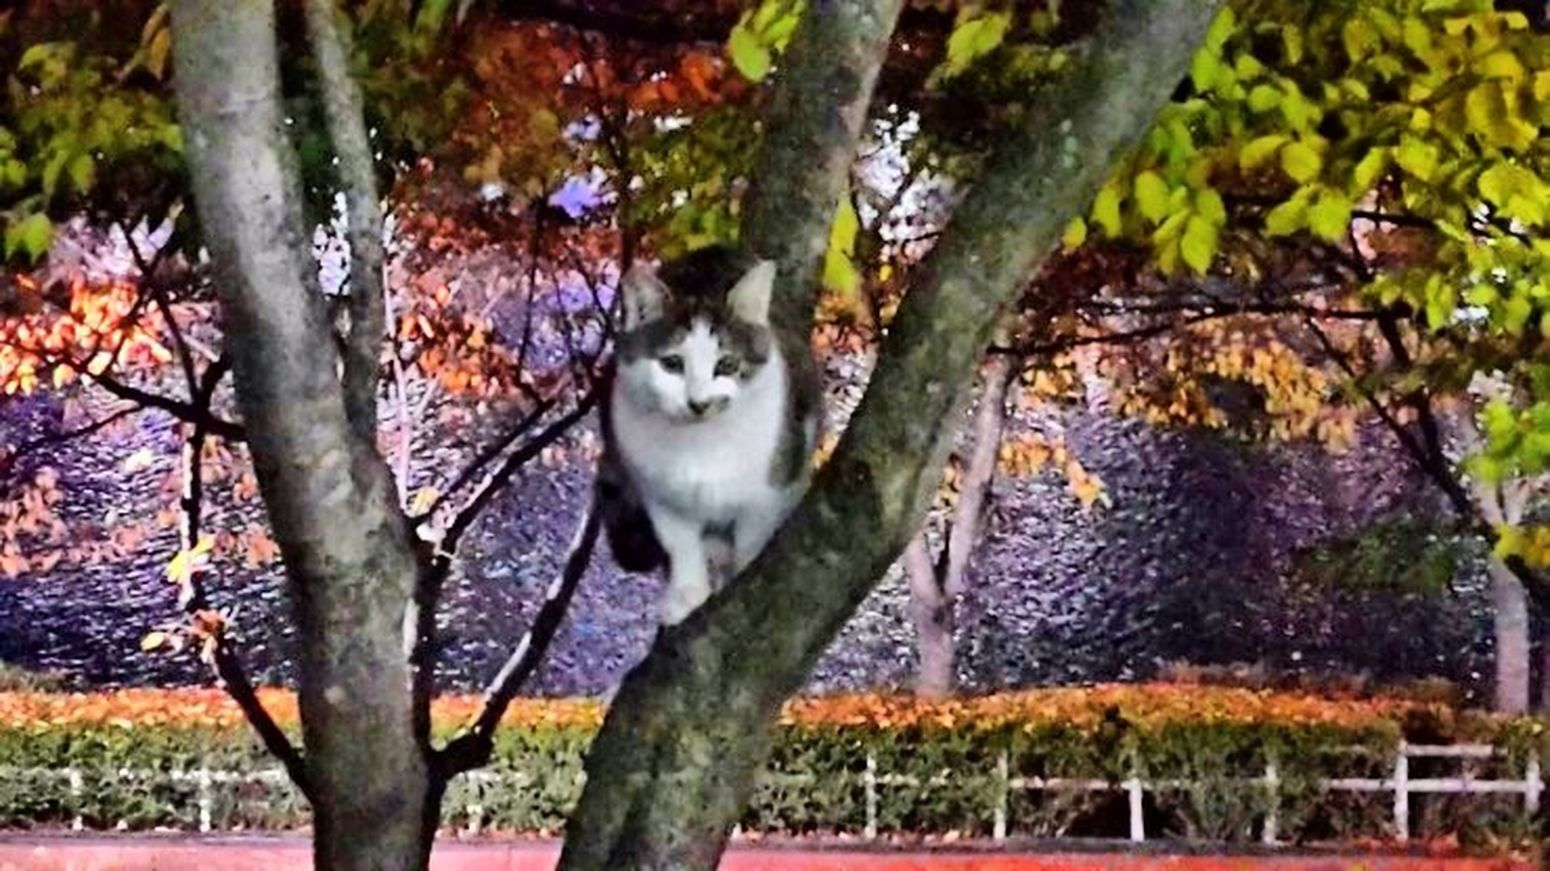 Very Cute Cat Seoukchon Lake Cats Nature Photography A Feral Cat Little Cats Alley Cat Cat Lovers LOTTEWORLD Autumn